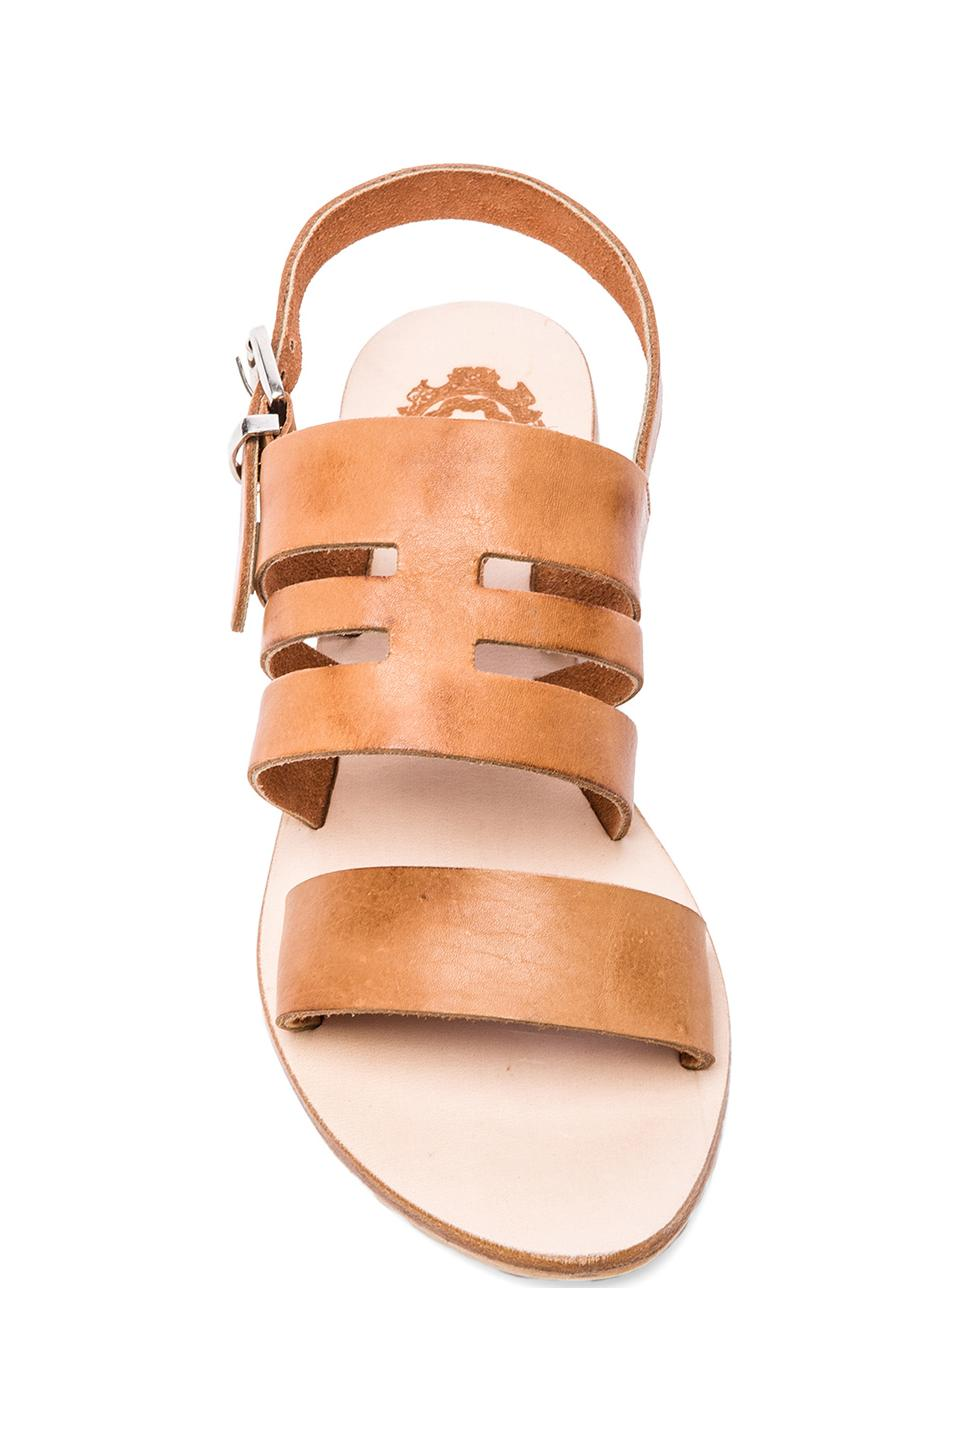 Sol sana phenoix sandal in tan from revolveclothing.com